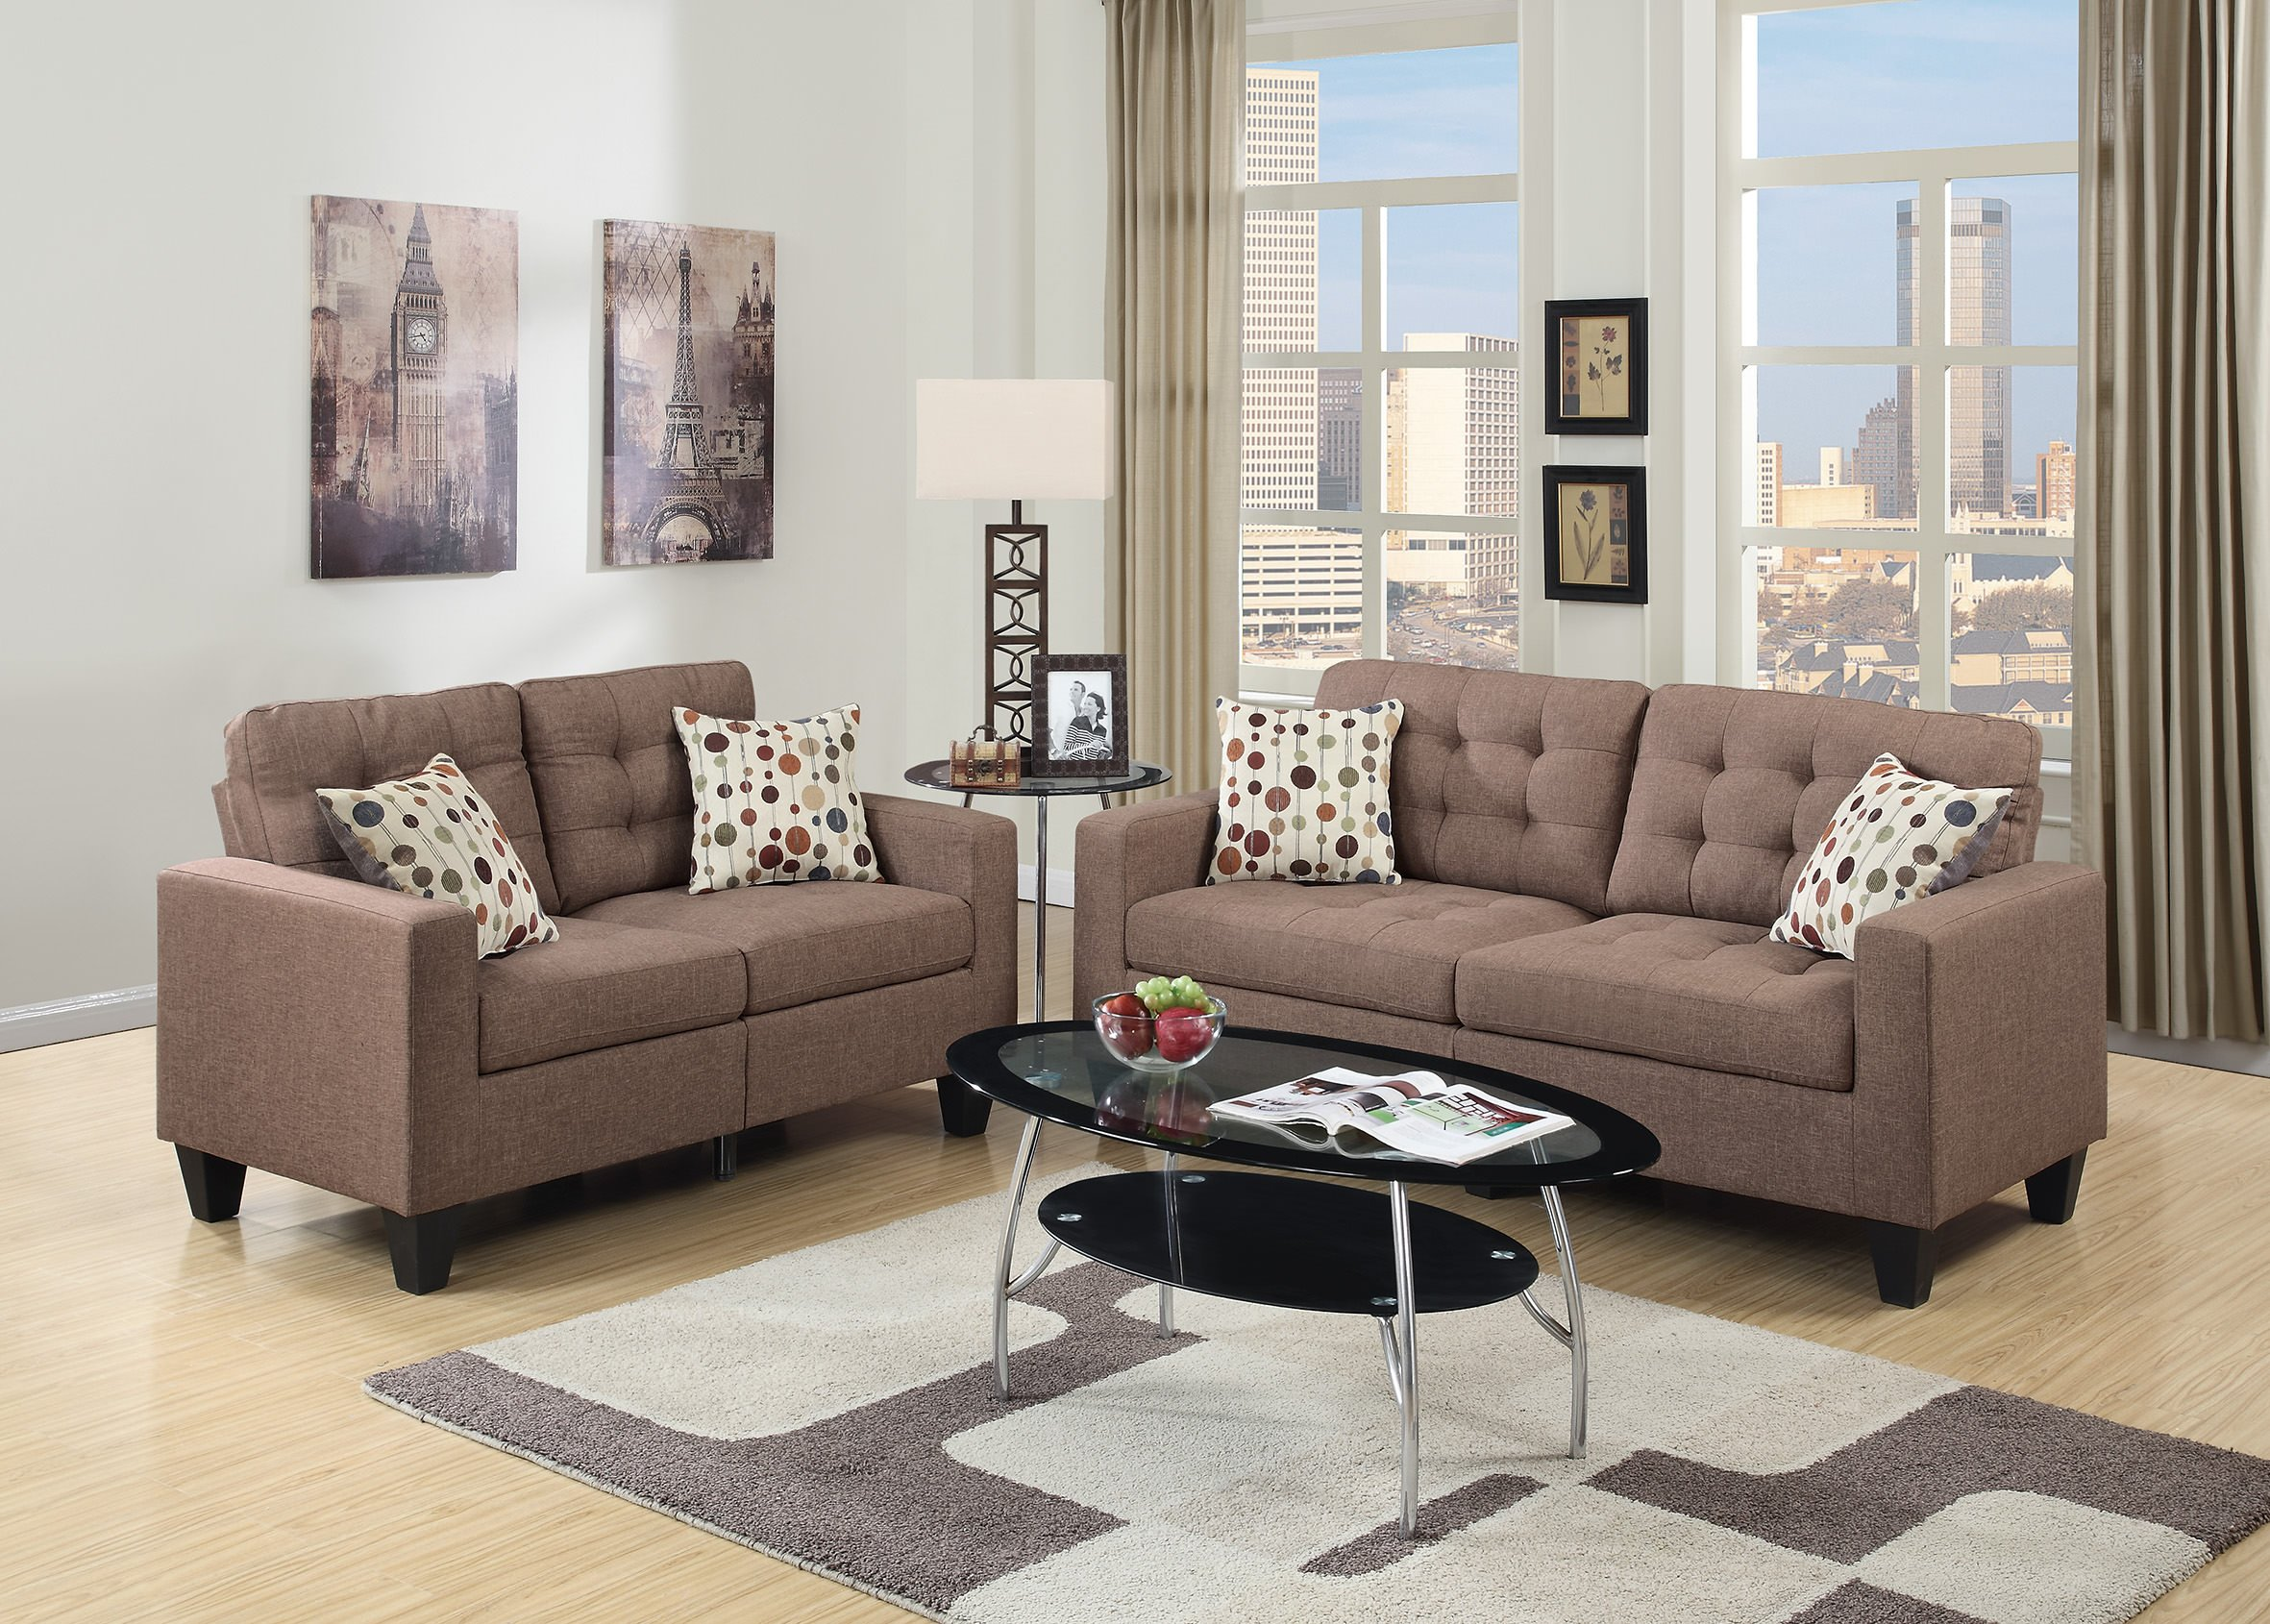 F6904 Light Coffee 2 Pcs Sofa Set by Poundex